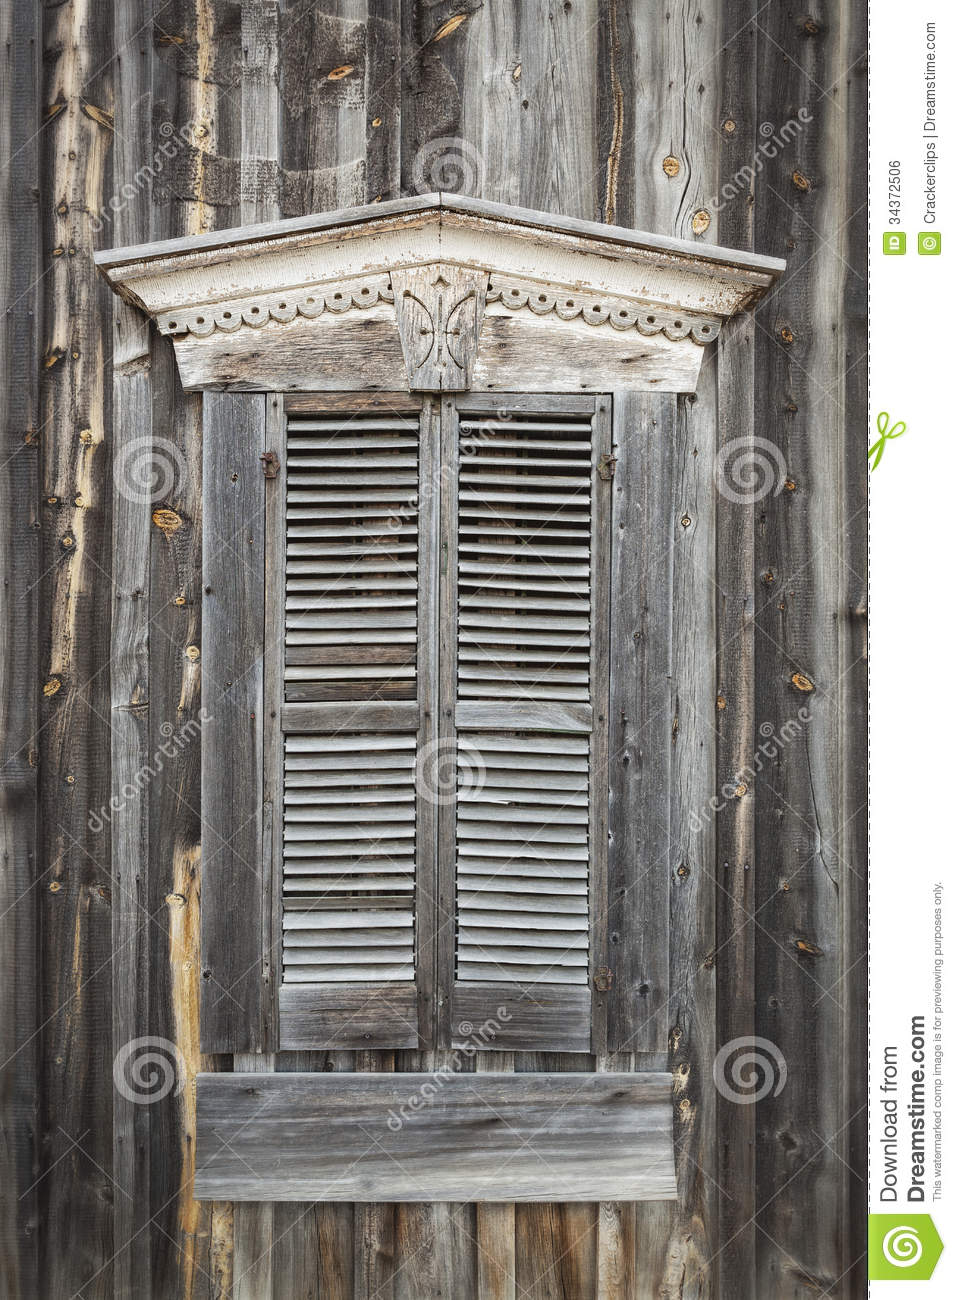 Wooden Shutters On Window Of Old Building Royalty Free